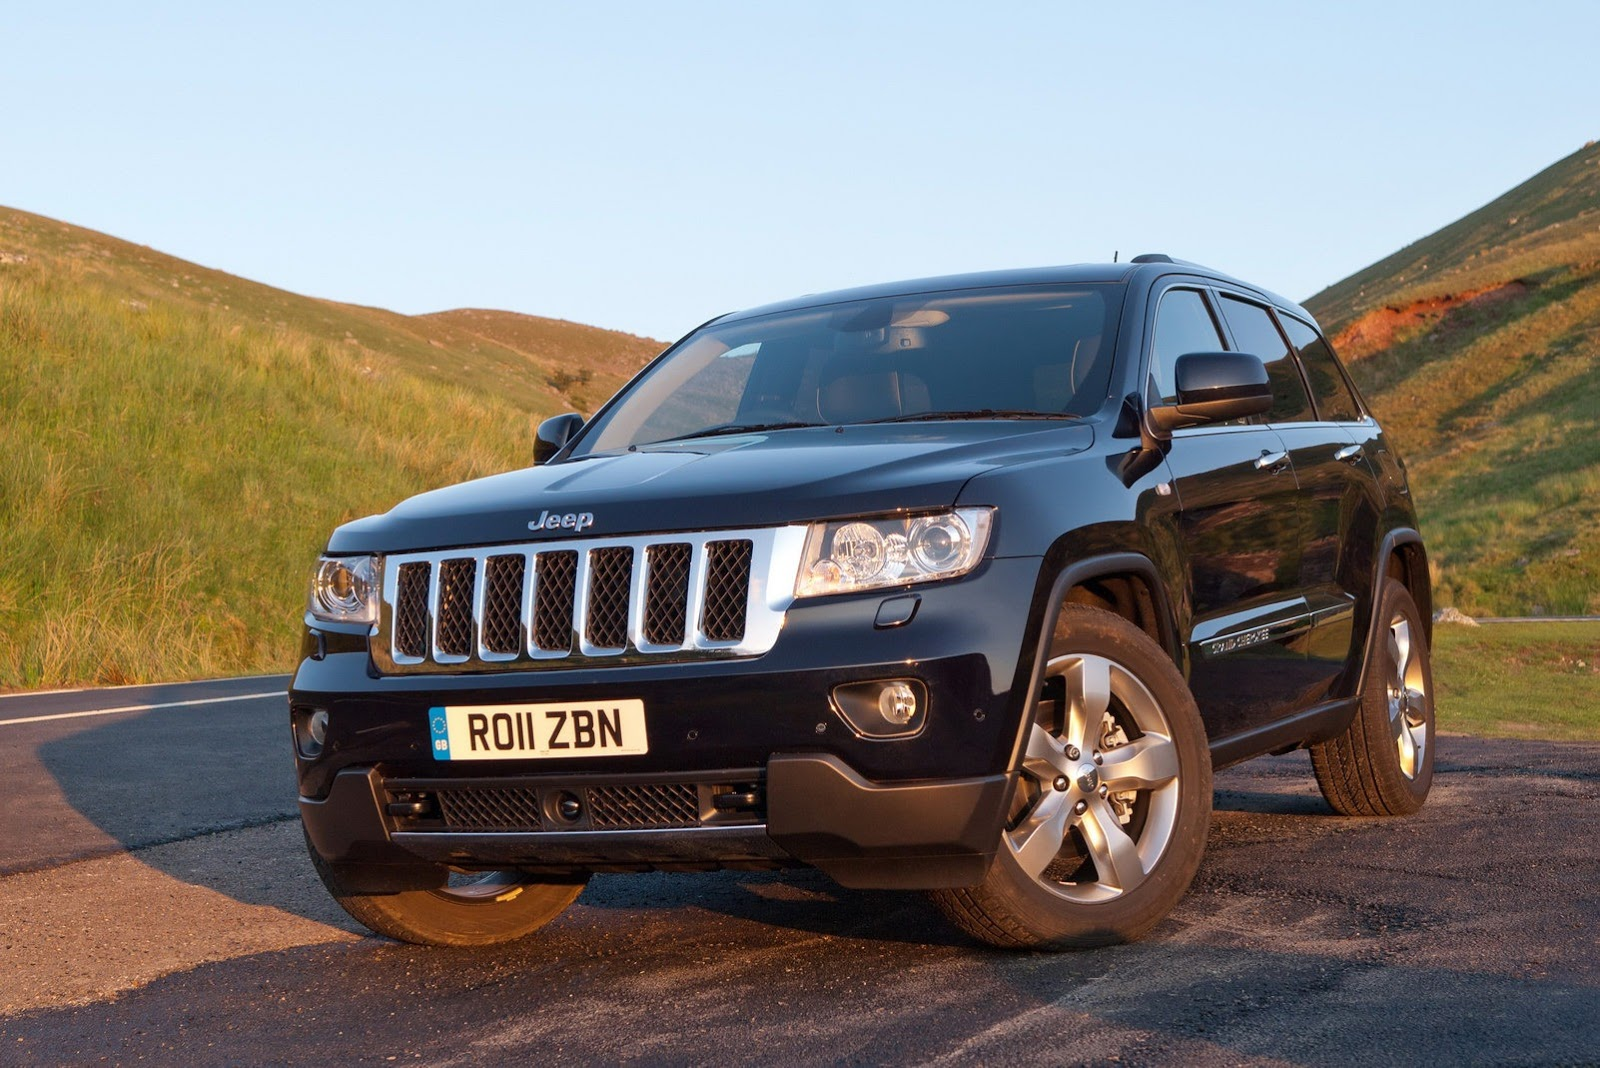 Jeep Patriot and Compass facelifts confirmed for 2013